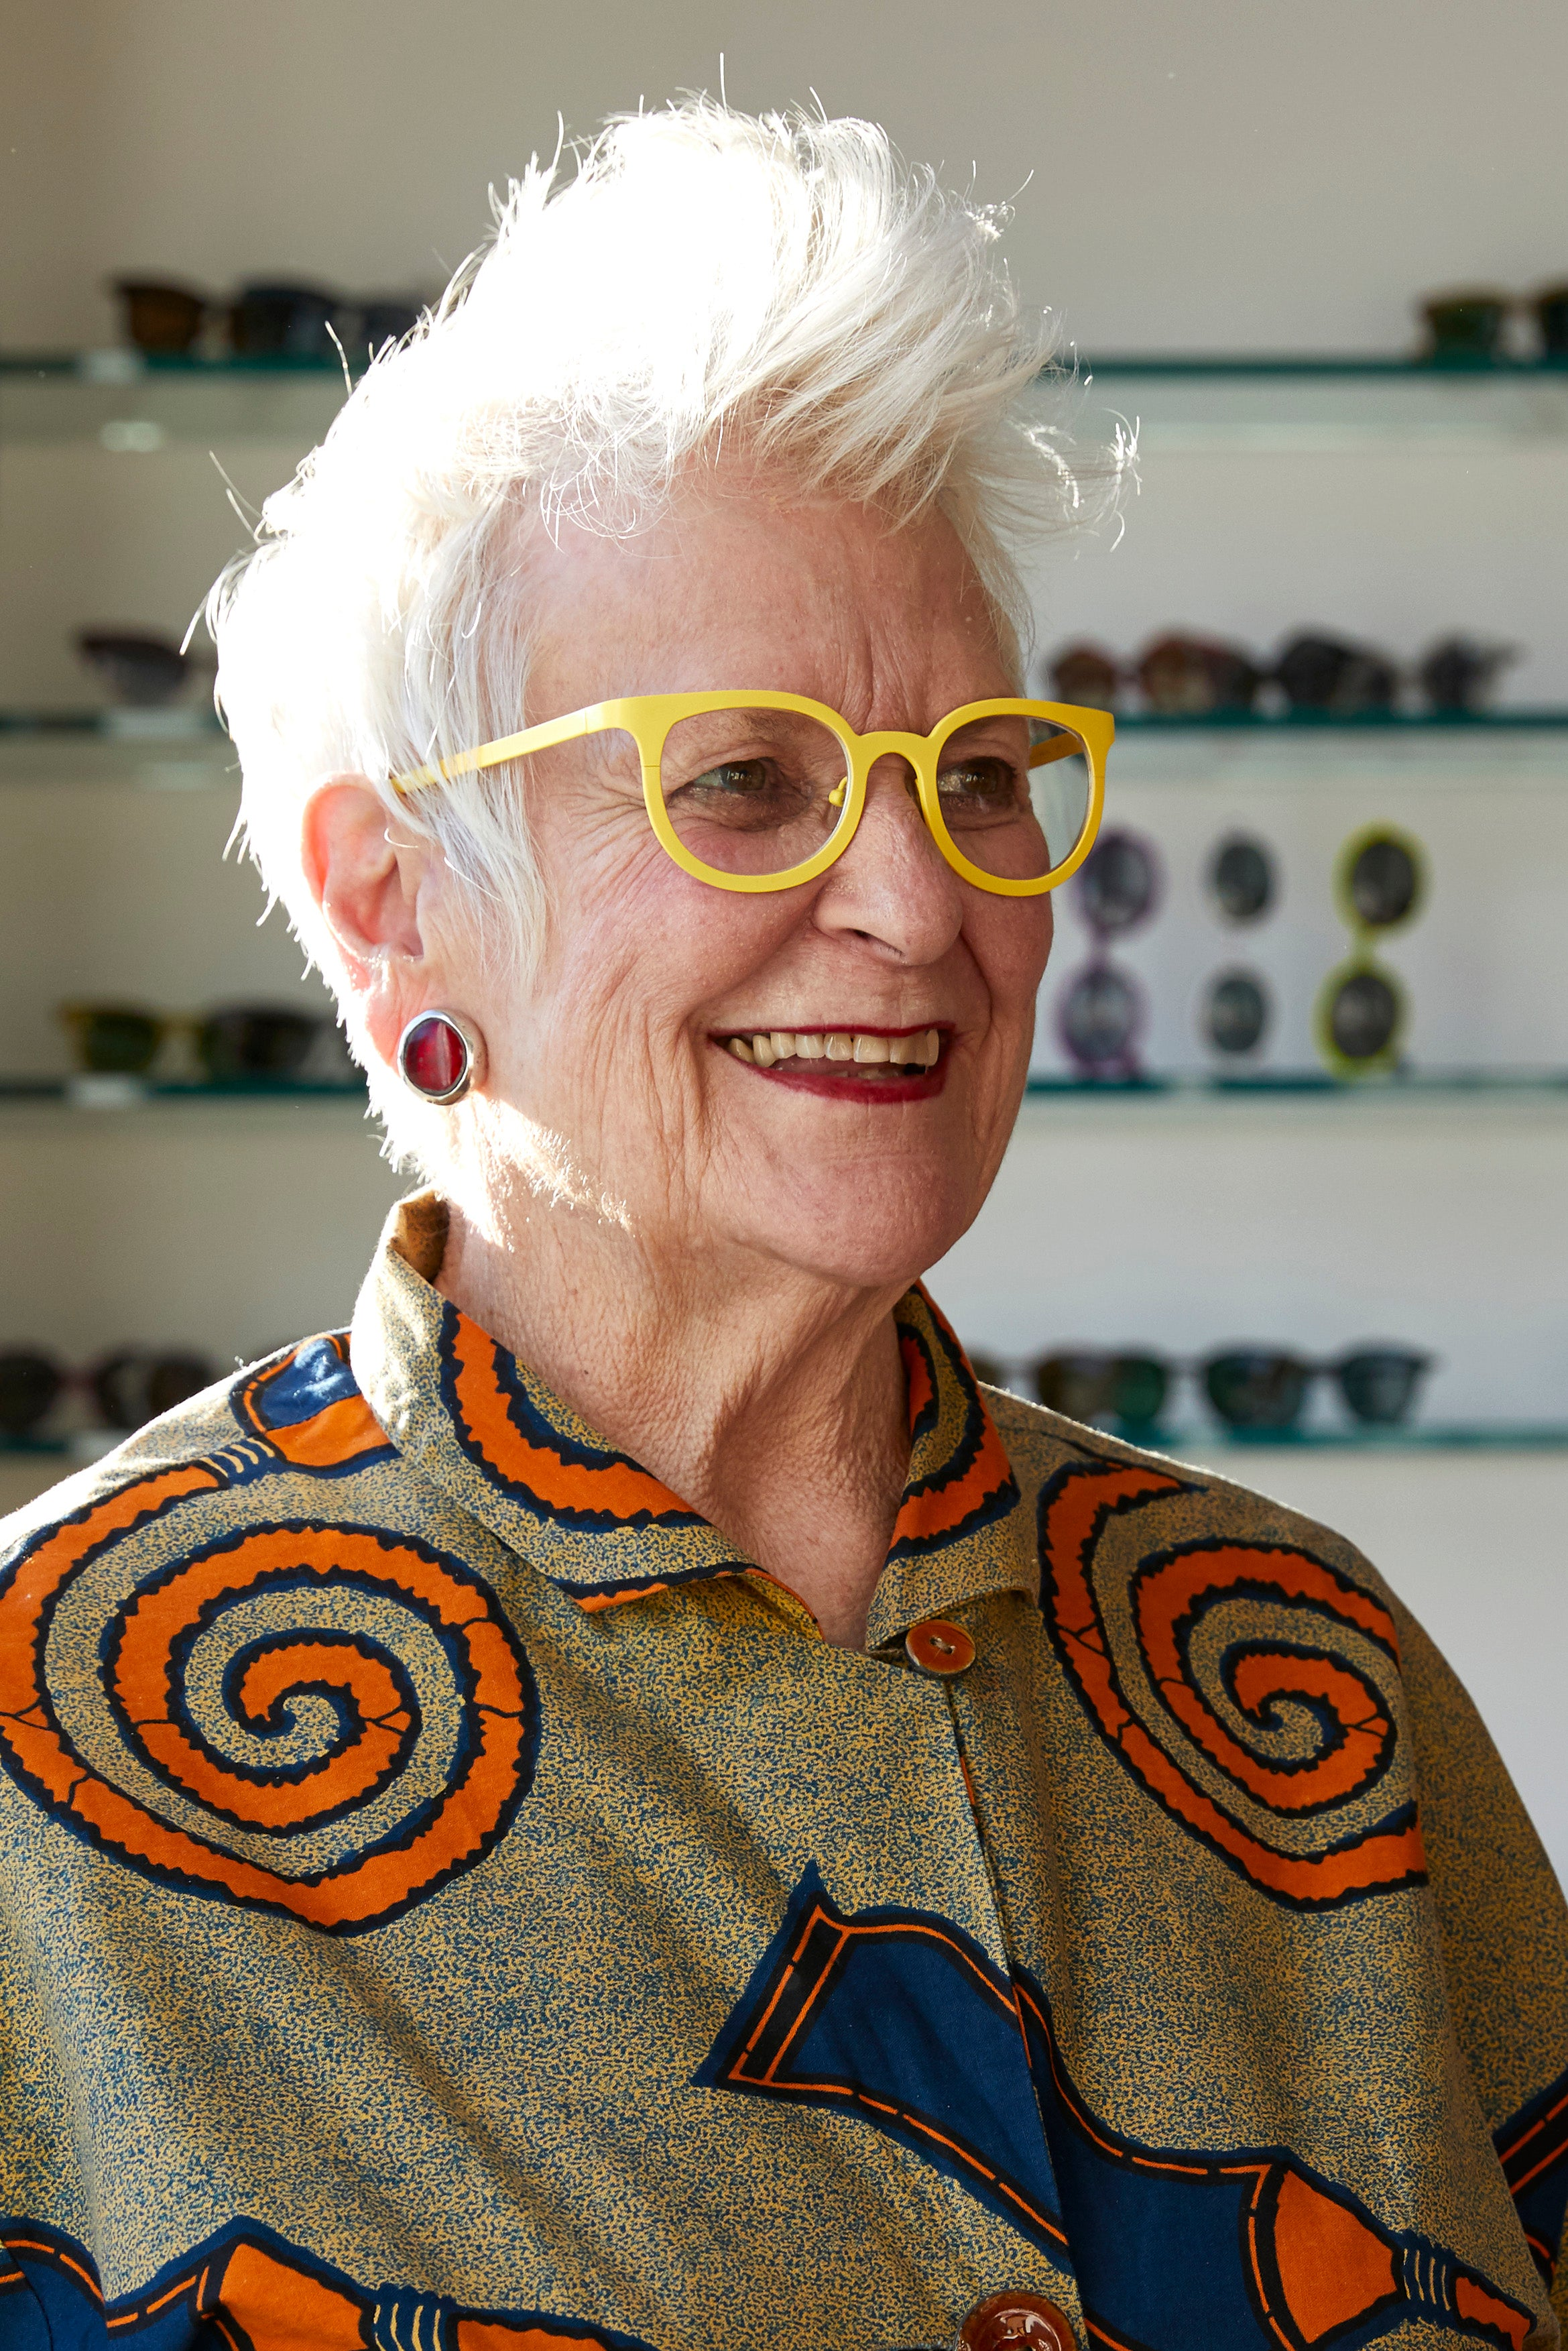 Gai Gherardi, co-founder of l.a.Eyeworks